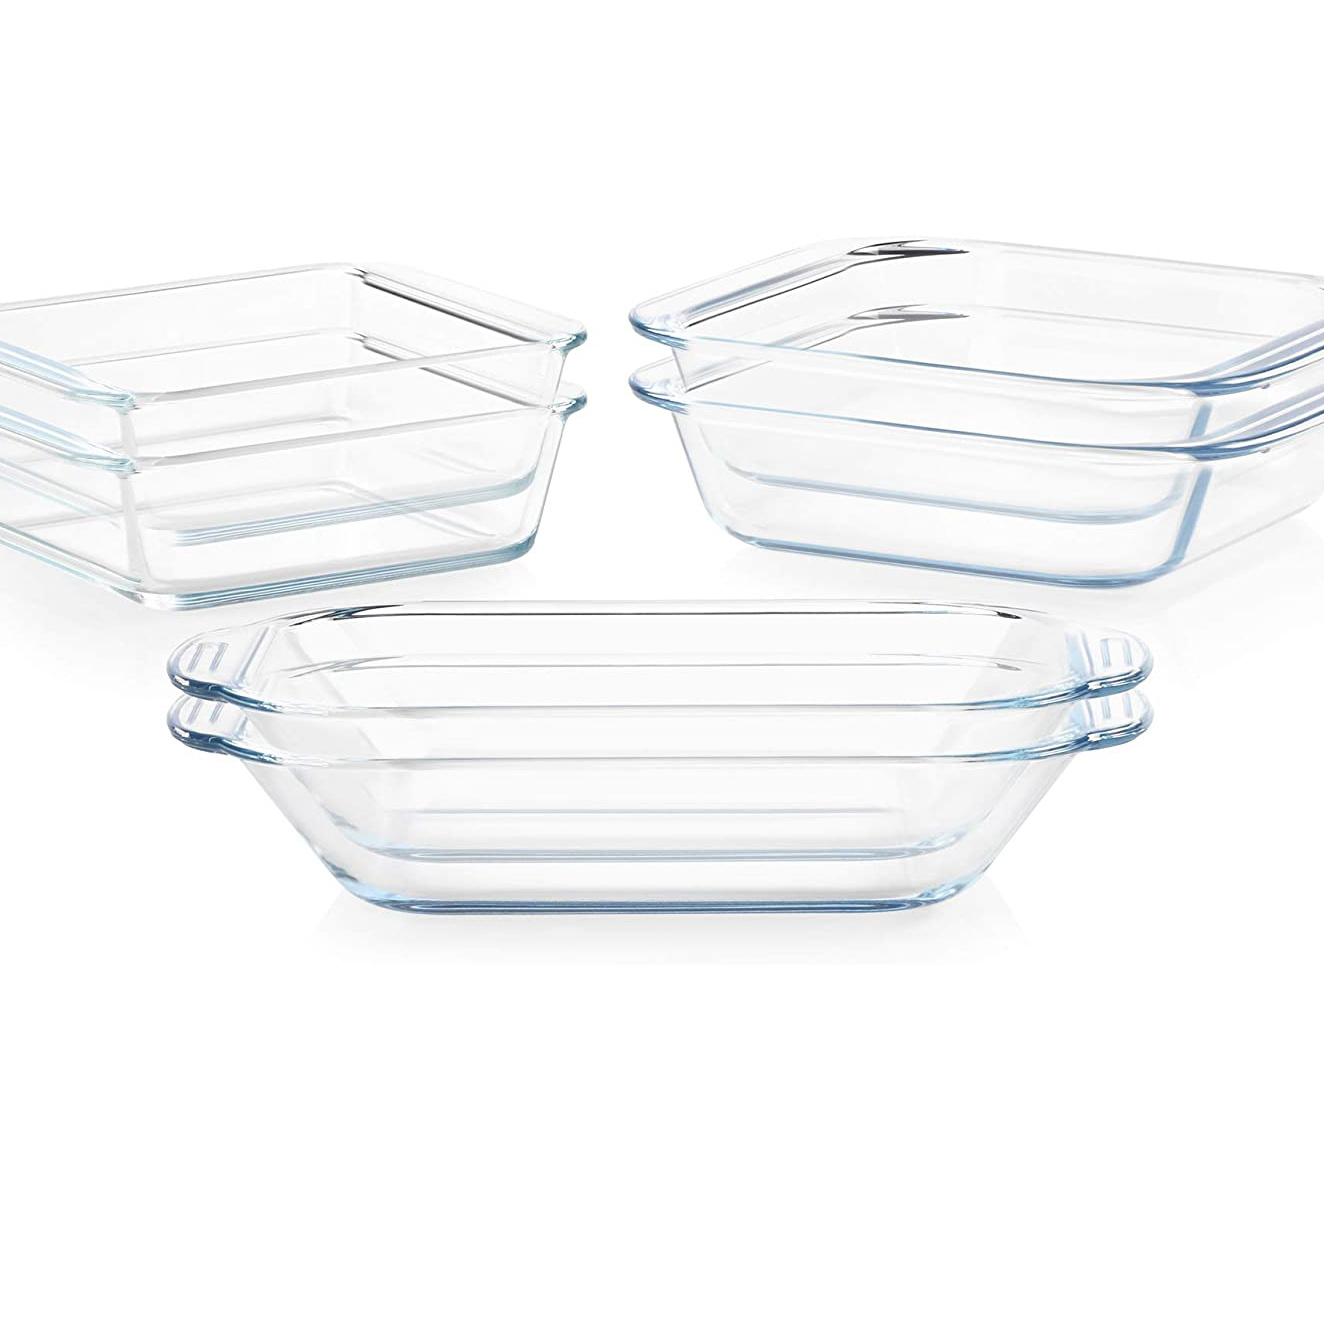 Pyrex Littles Toaster Oven Cookware on a white background